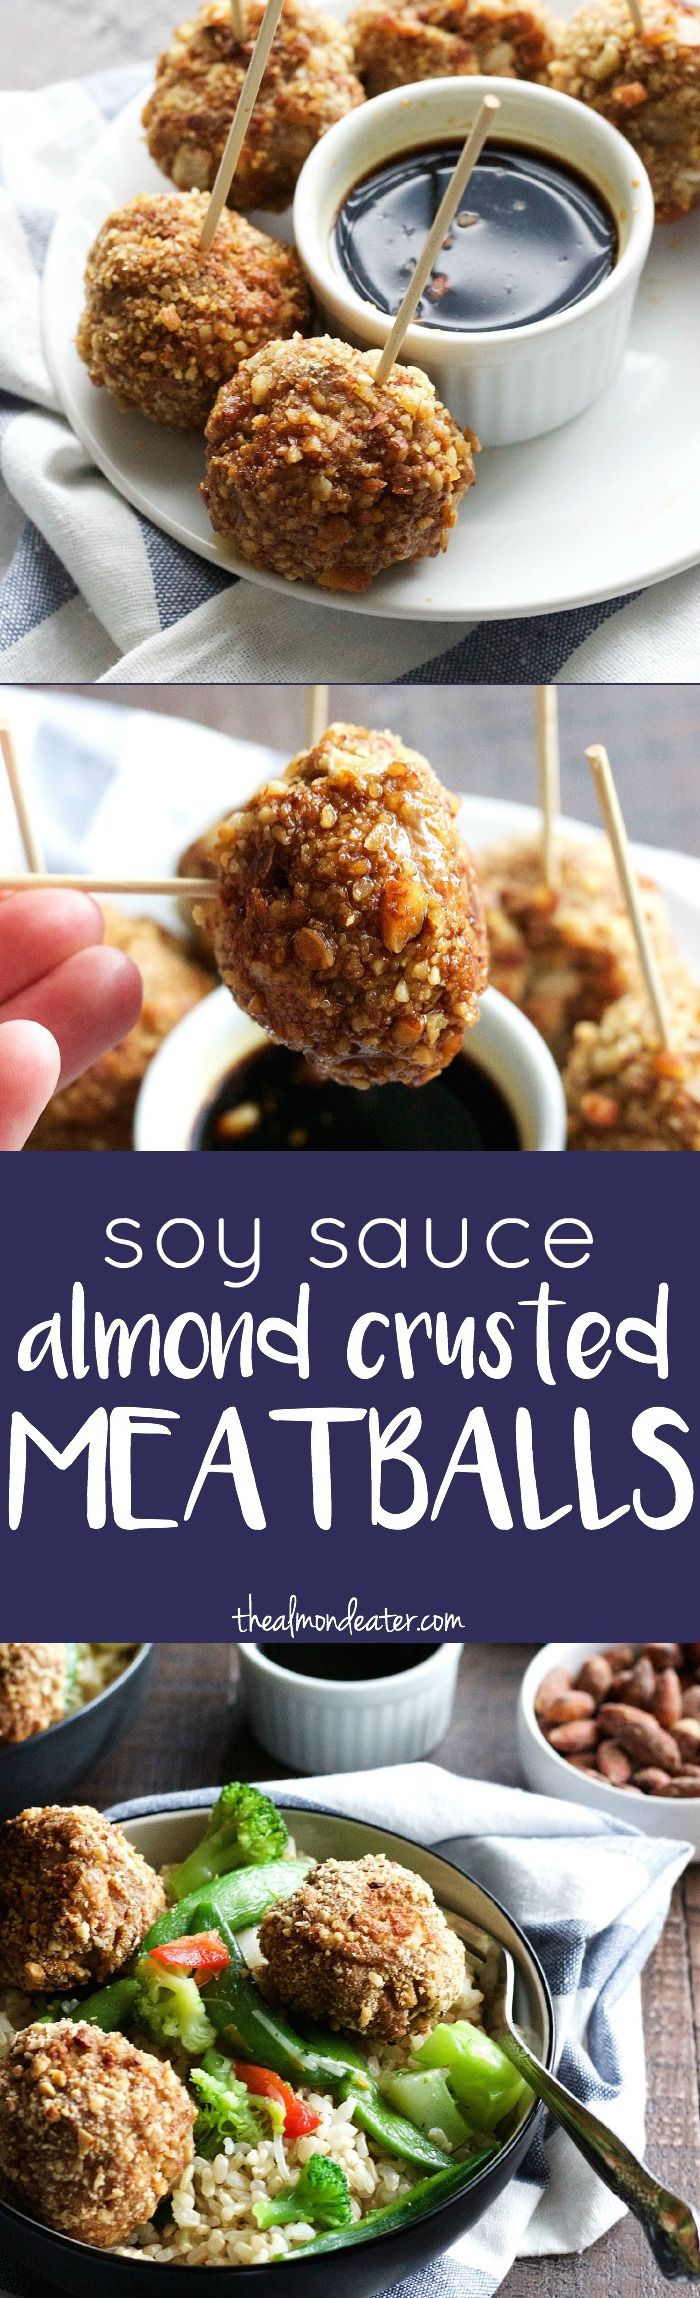 5-ingredient meatballs covered in almonds. An AWESOME texture and a delicious appetizer or dinner recipe | thealmondeater.com